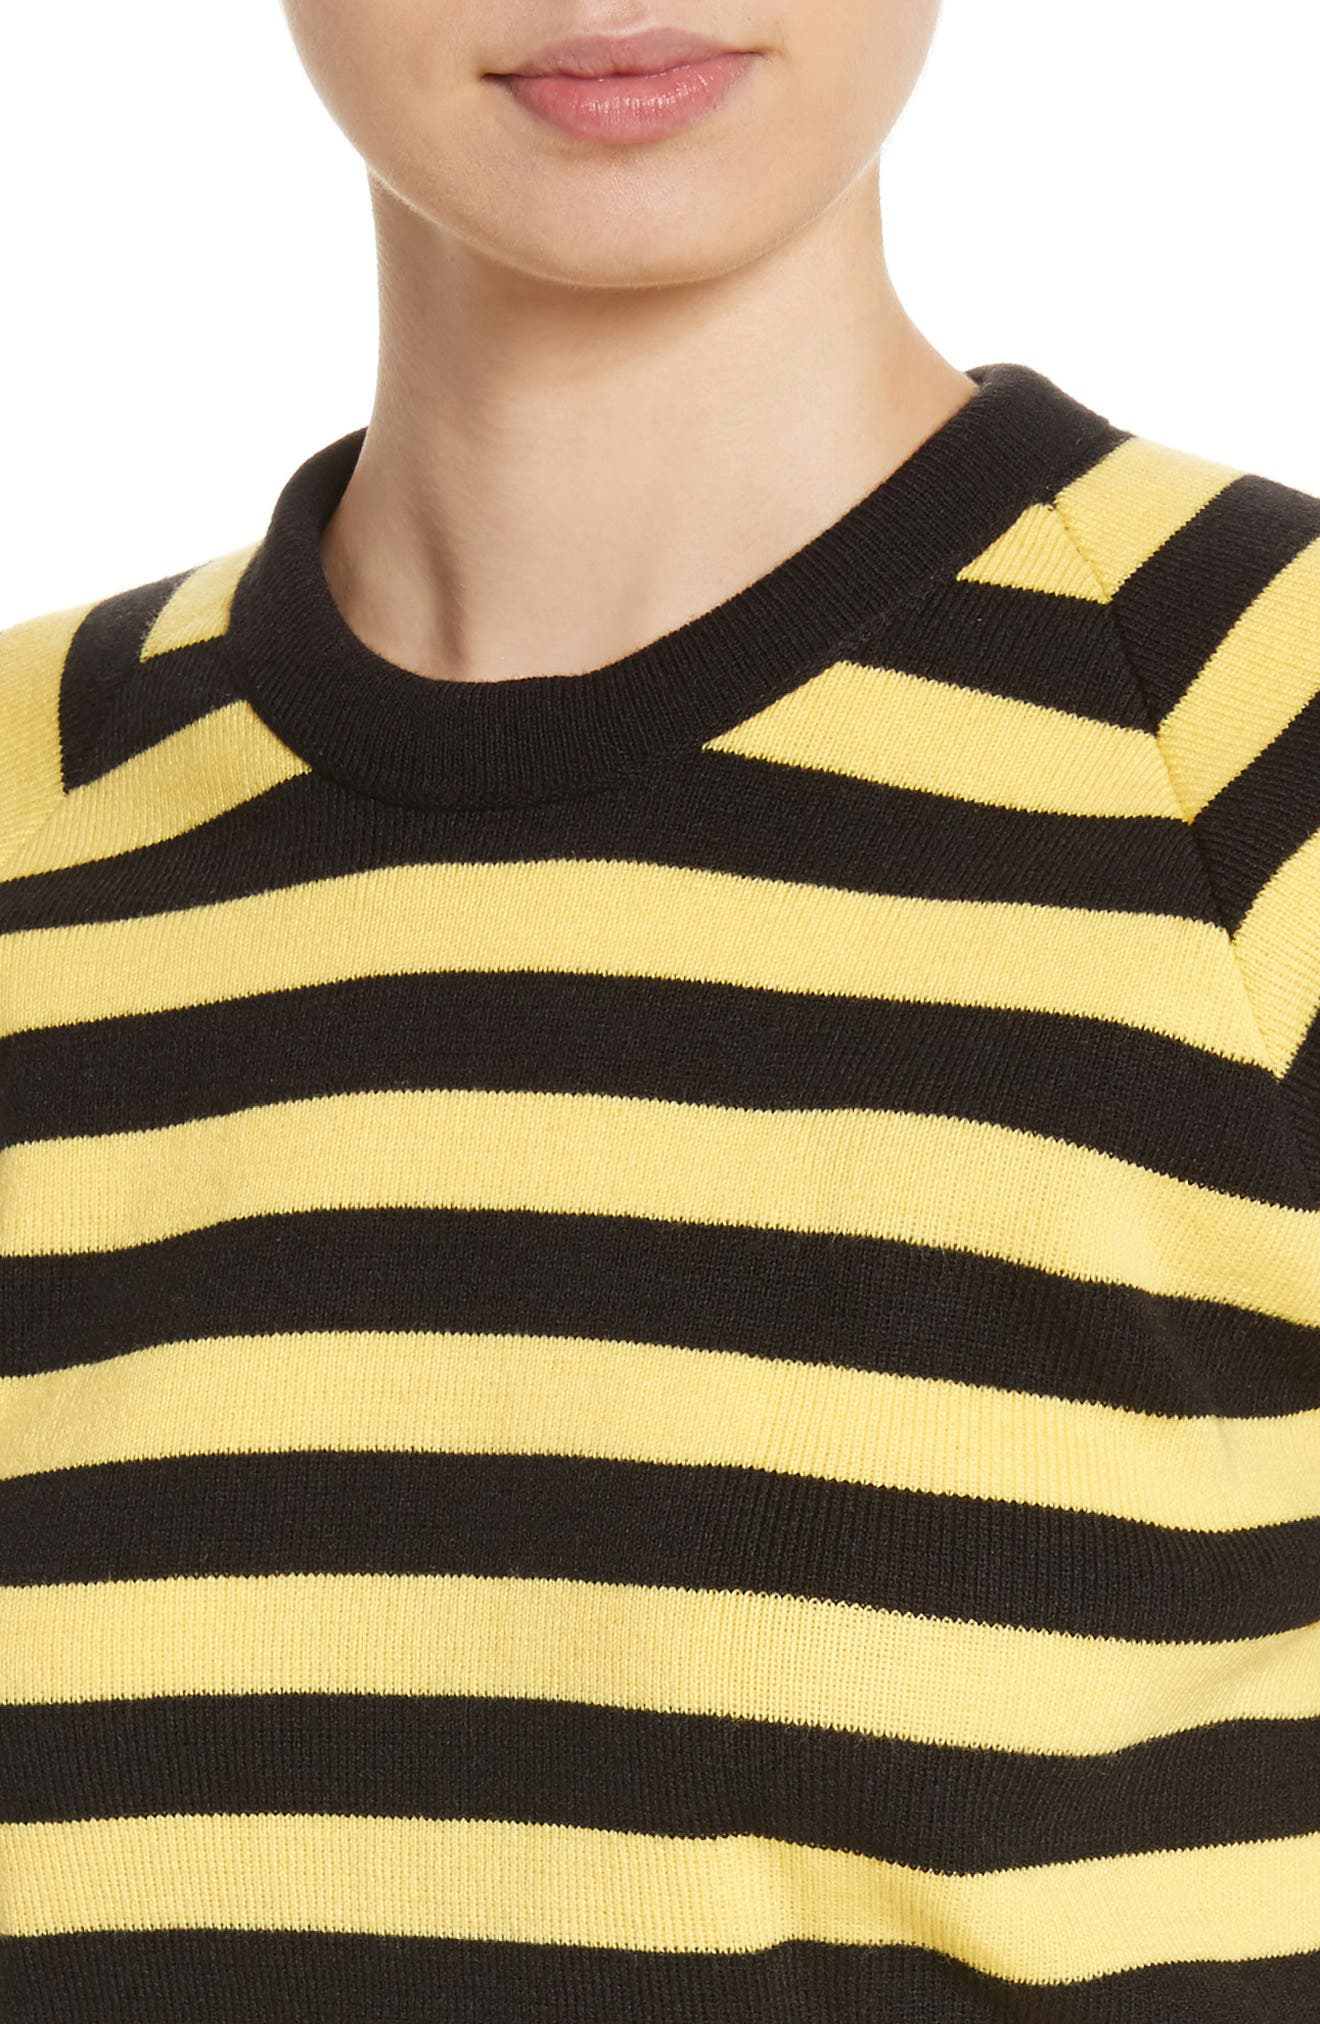 Bumblebee Stripe Sweater,                             Alternate thumbnail 4, color,                             Black Yellow